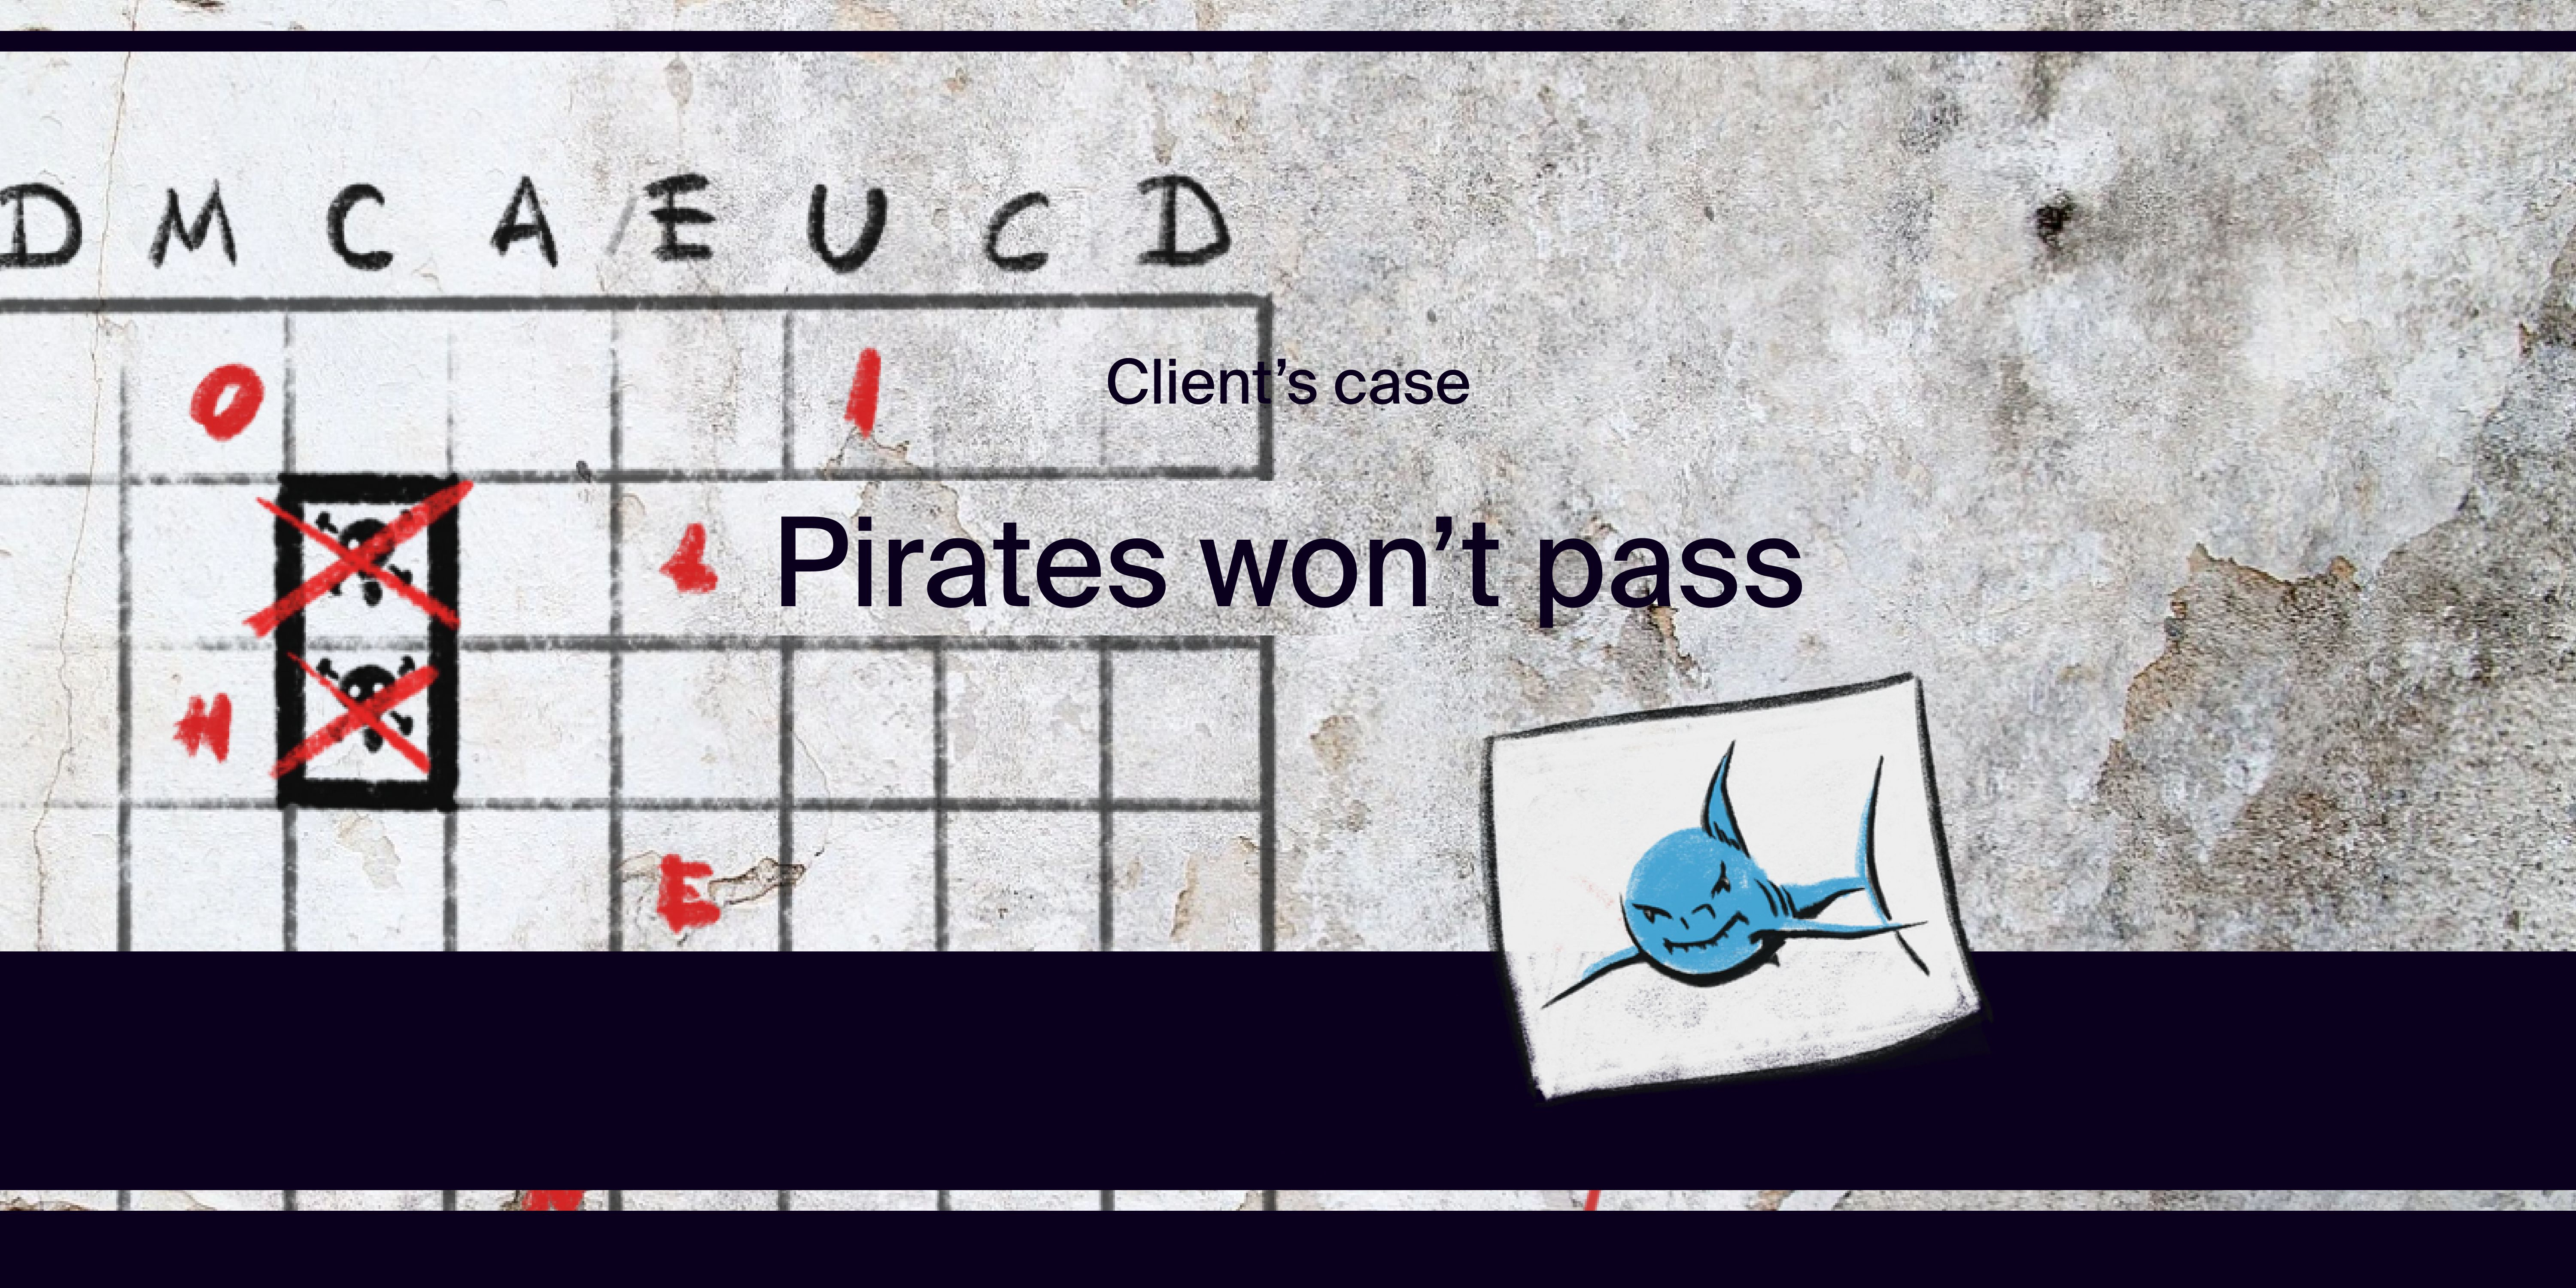 /pirates-wont-pass-how-to-get-stolen-content-taken-down-cr4i37jn feature image